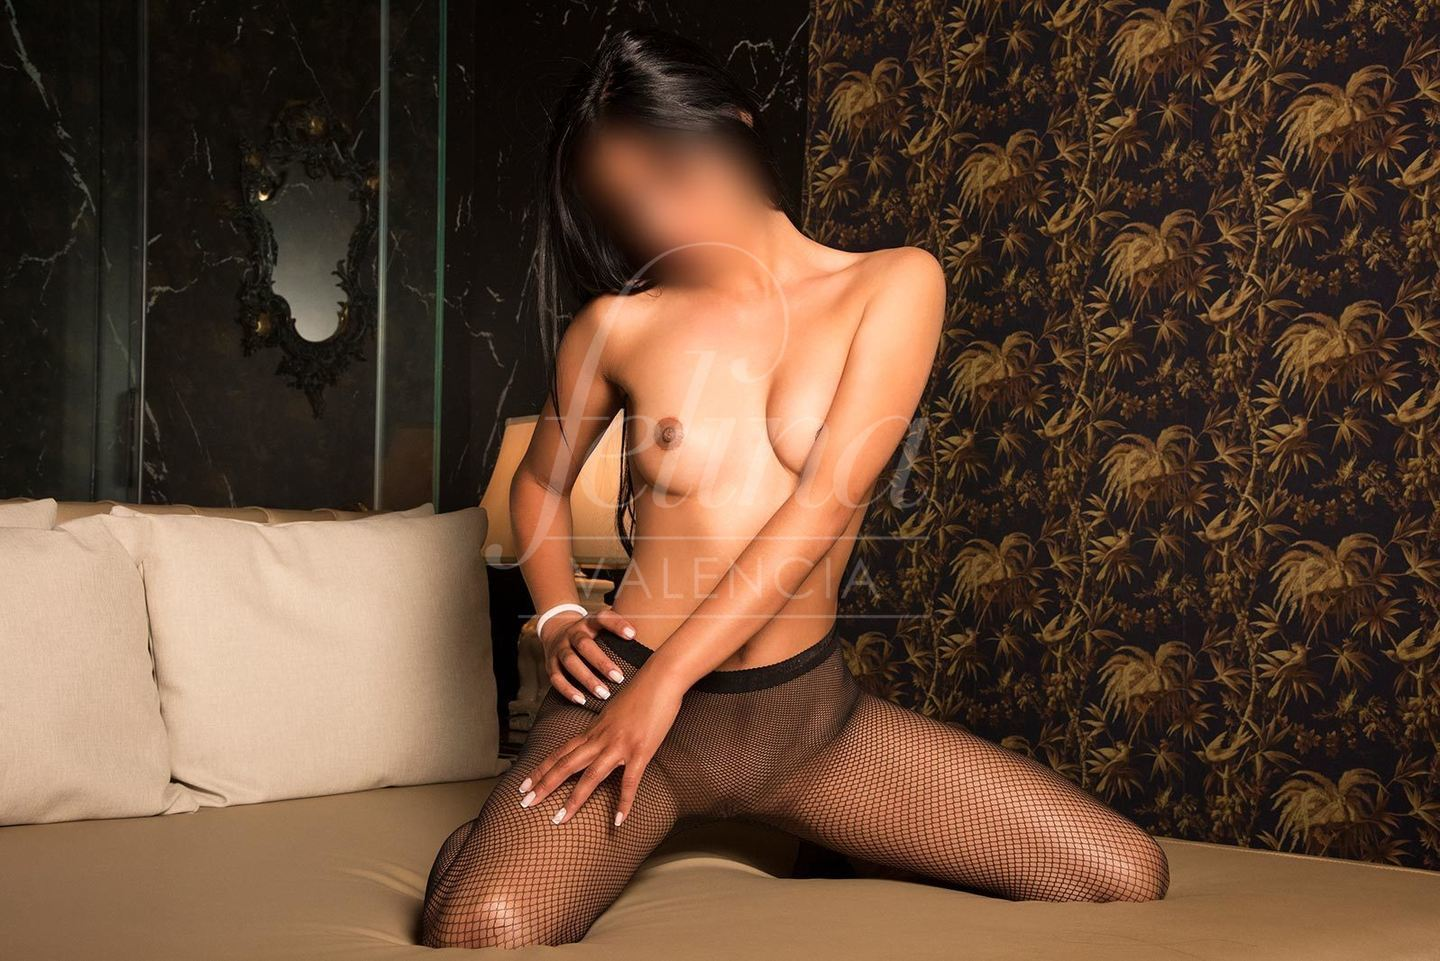 Salome: Brunette escort for PSE in Valencia, wearing fishnets